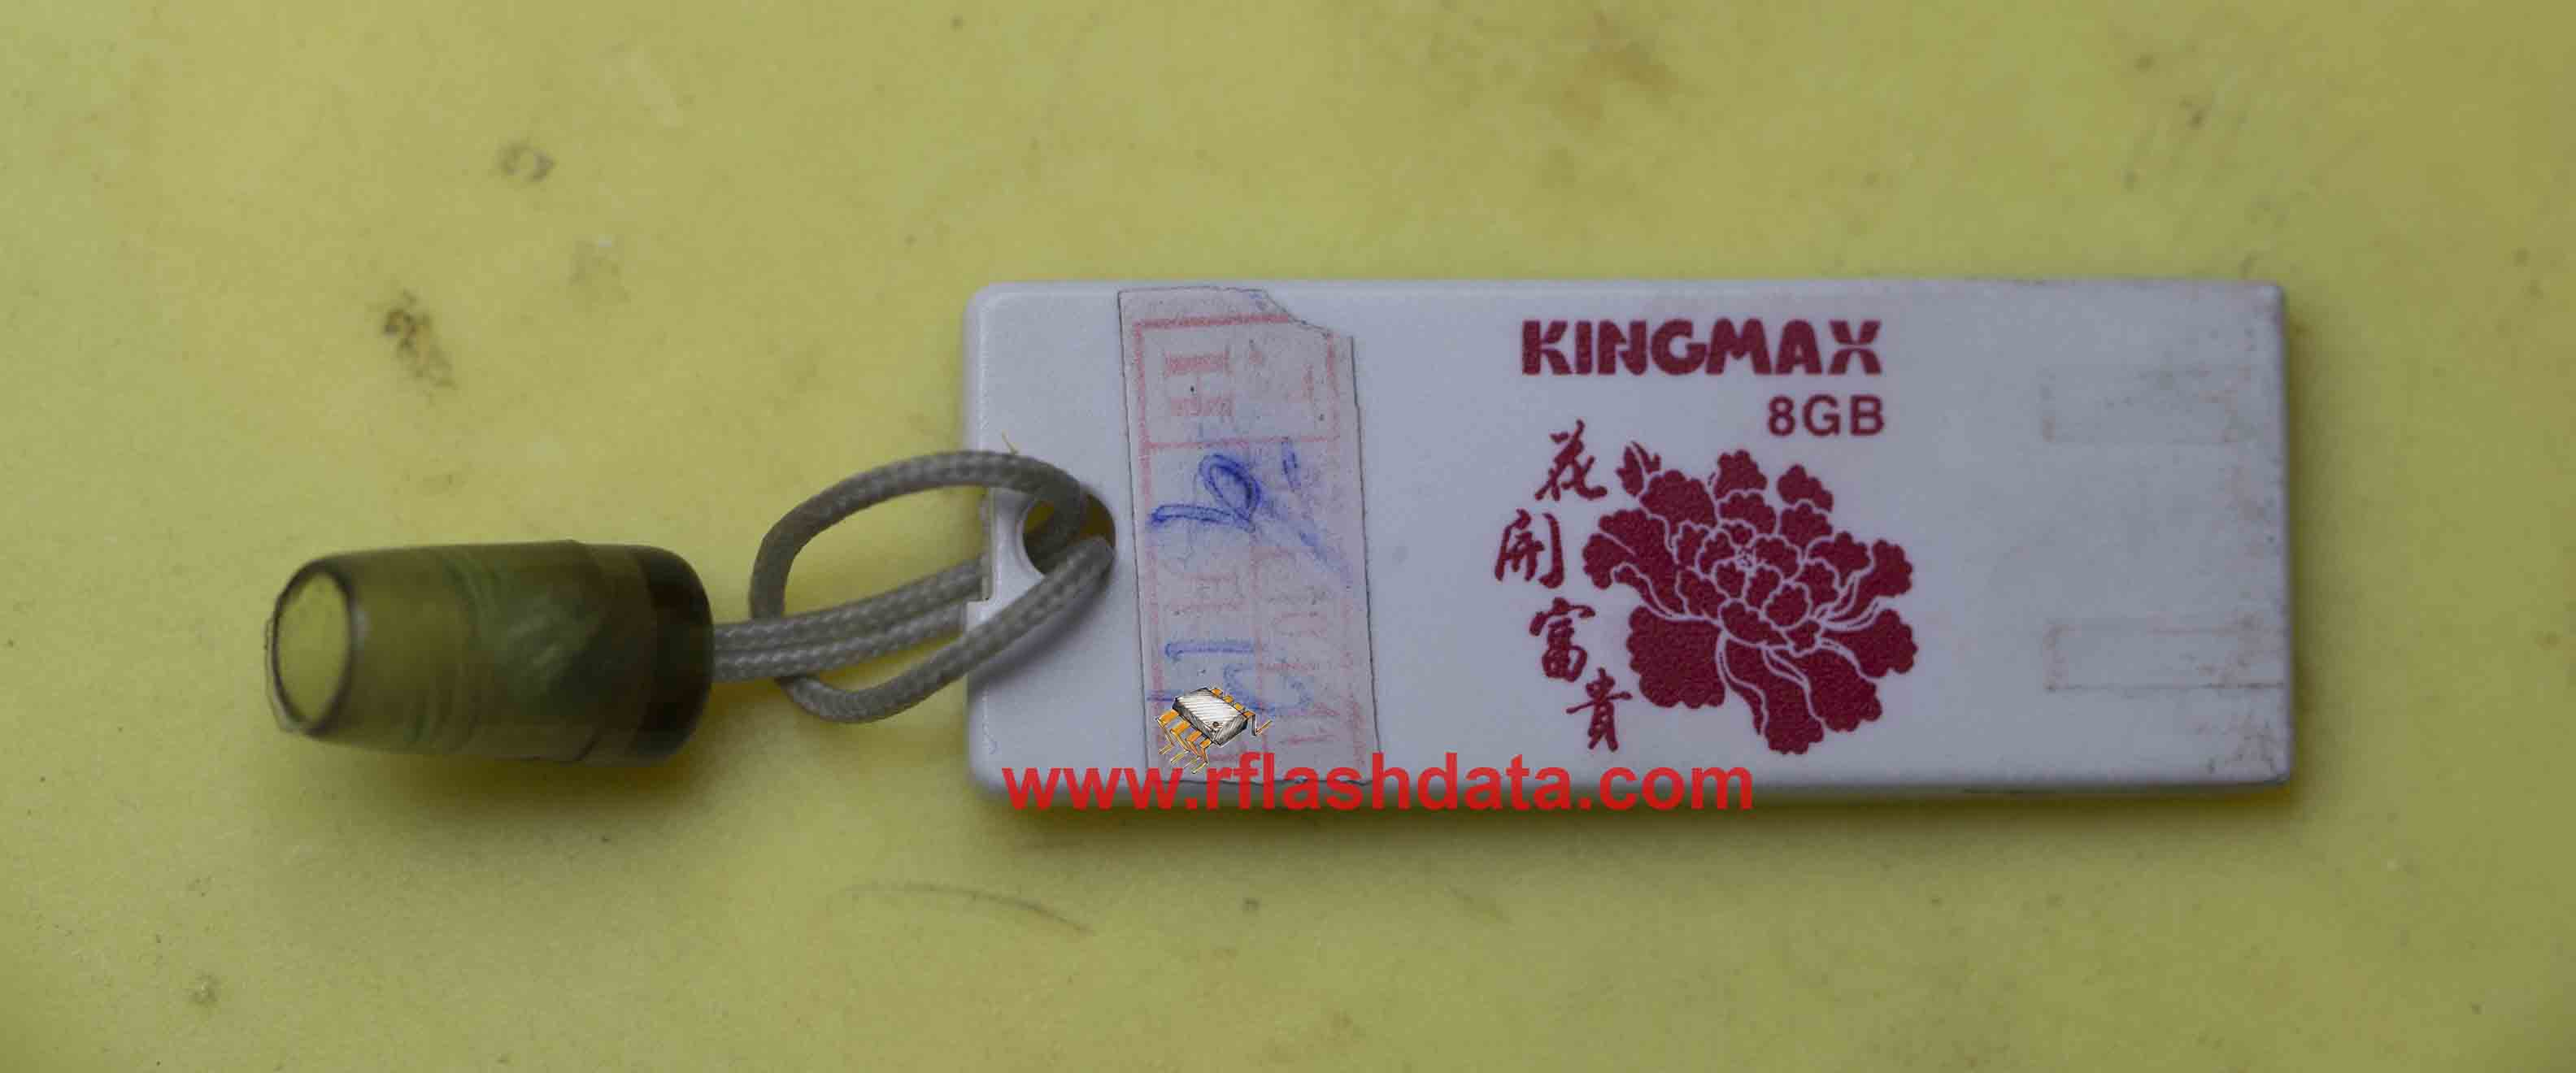 kingmax monolith flash drive data recovery